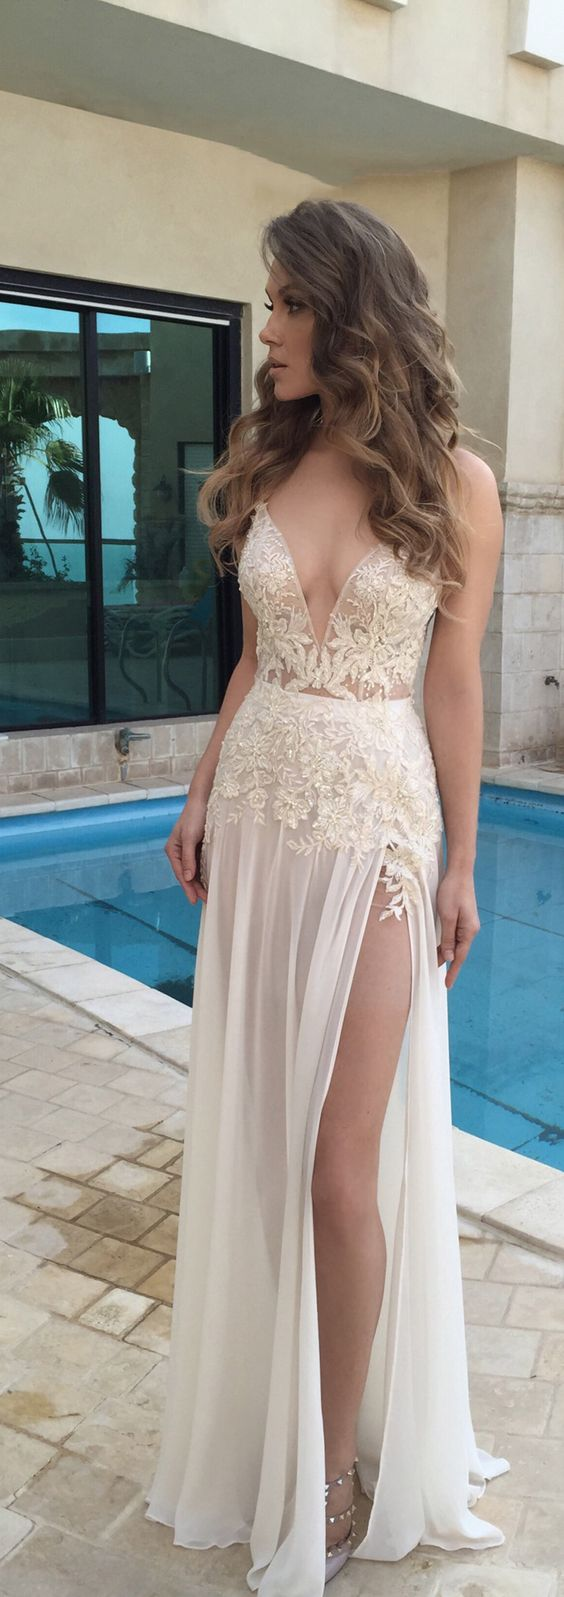 d2d0d639911 Custom Made Charming White Lace Beaded Prom Dress